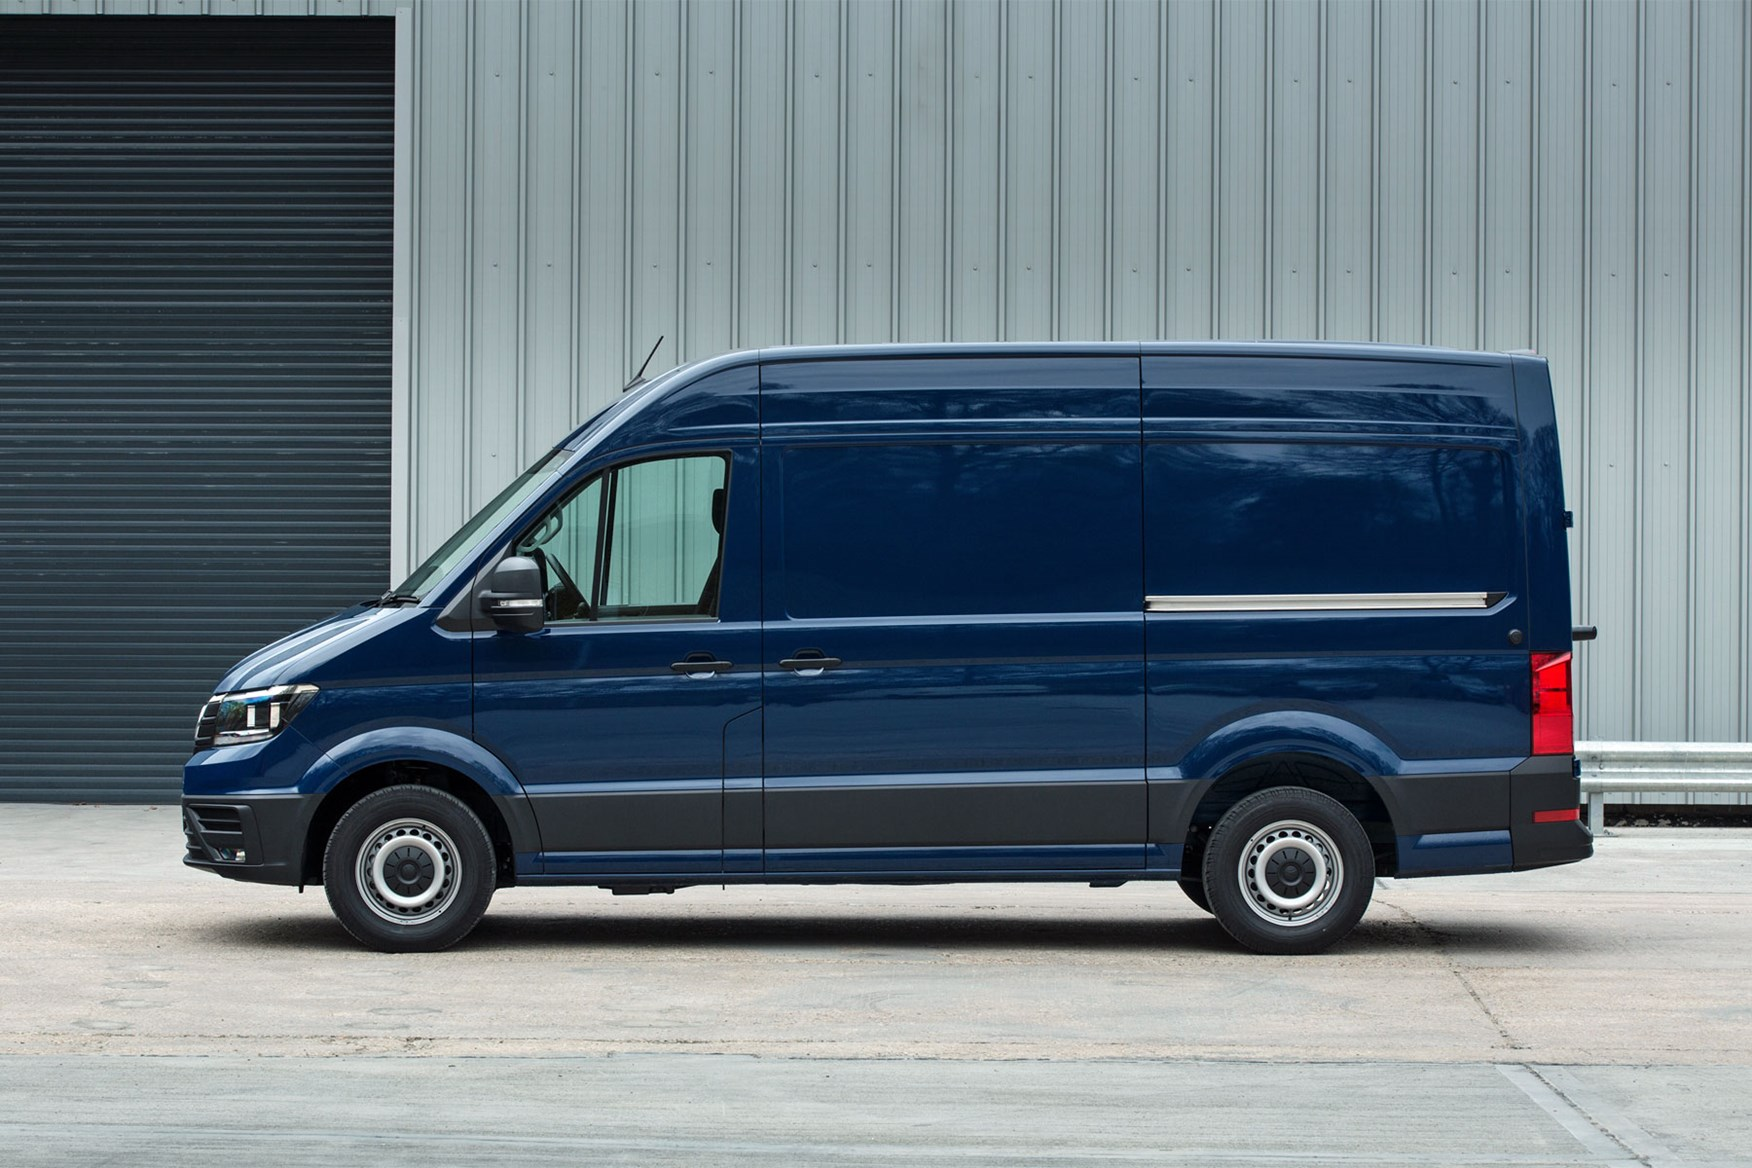 VW Crafter (2017-on) side view